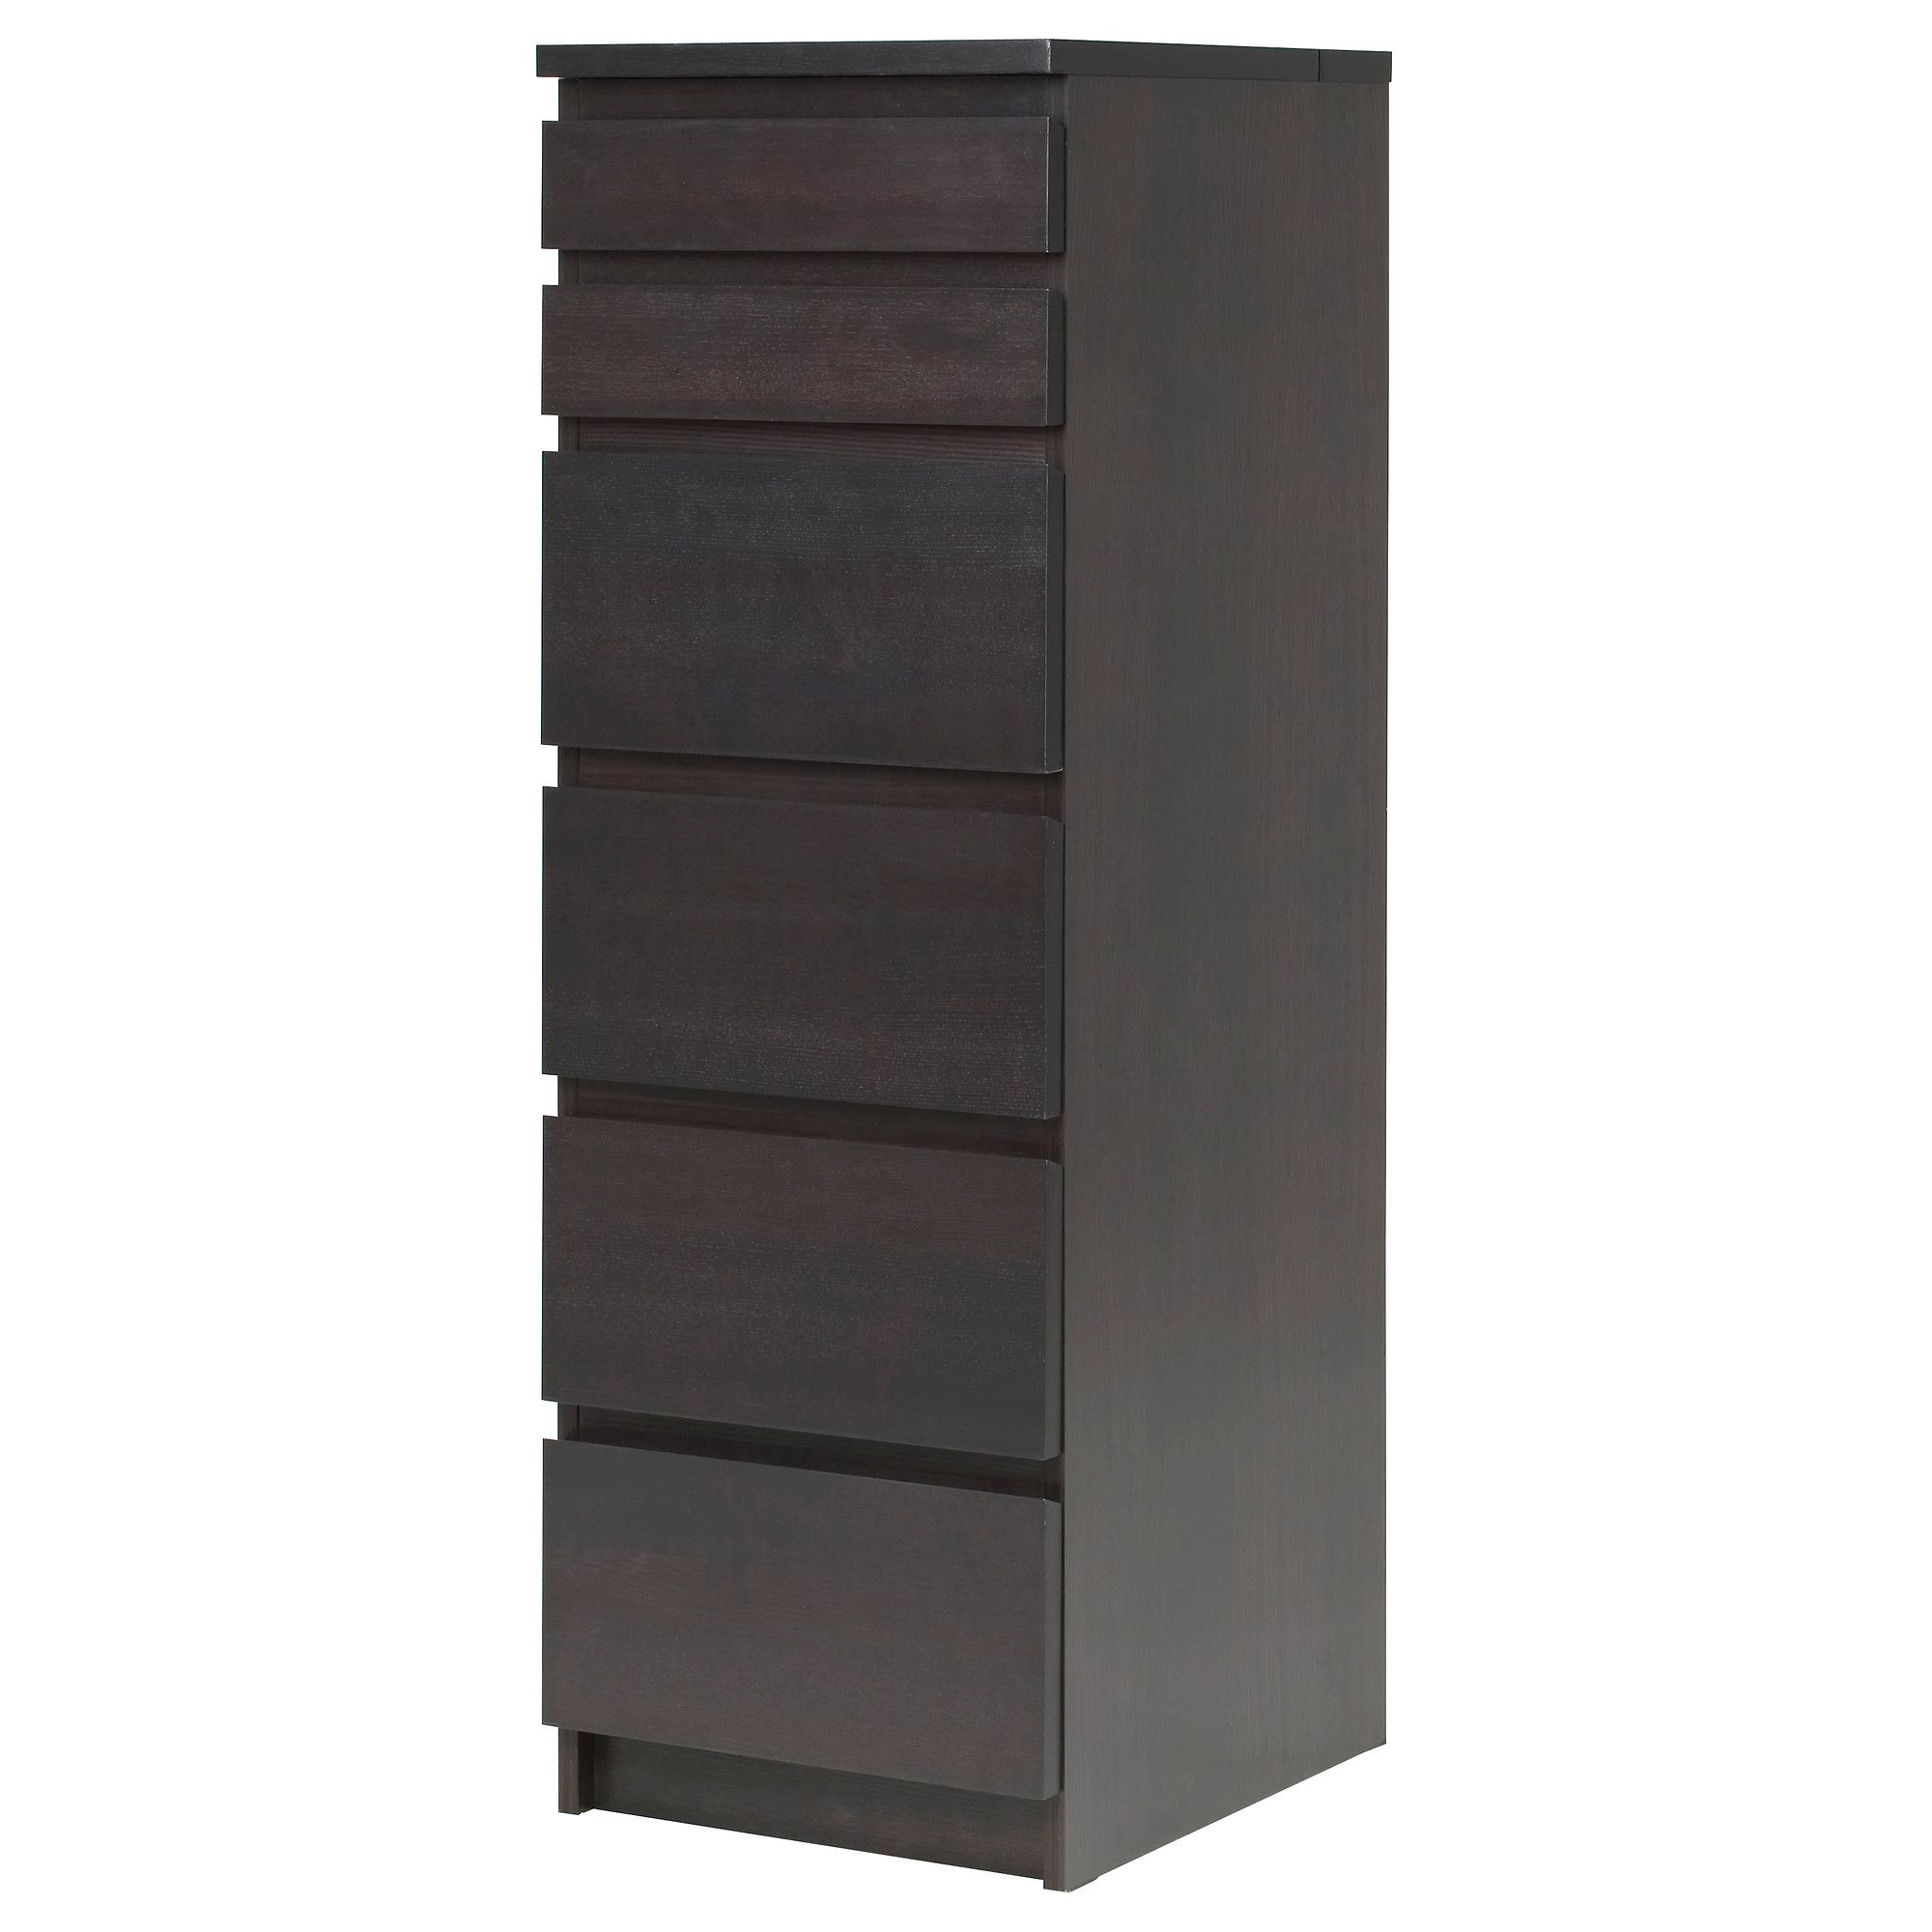 Us Furniture And Home Furnishings Malm Chest Of Drawers 6